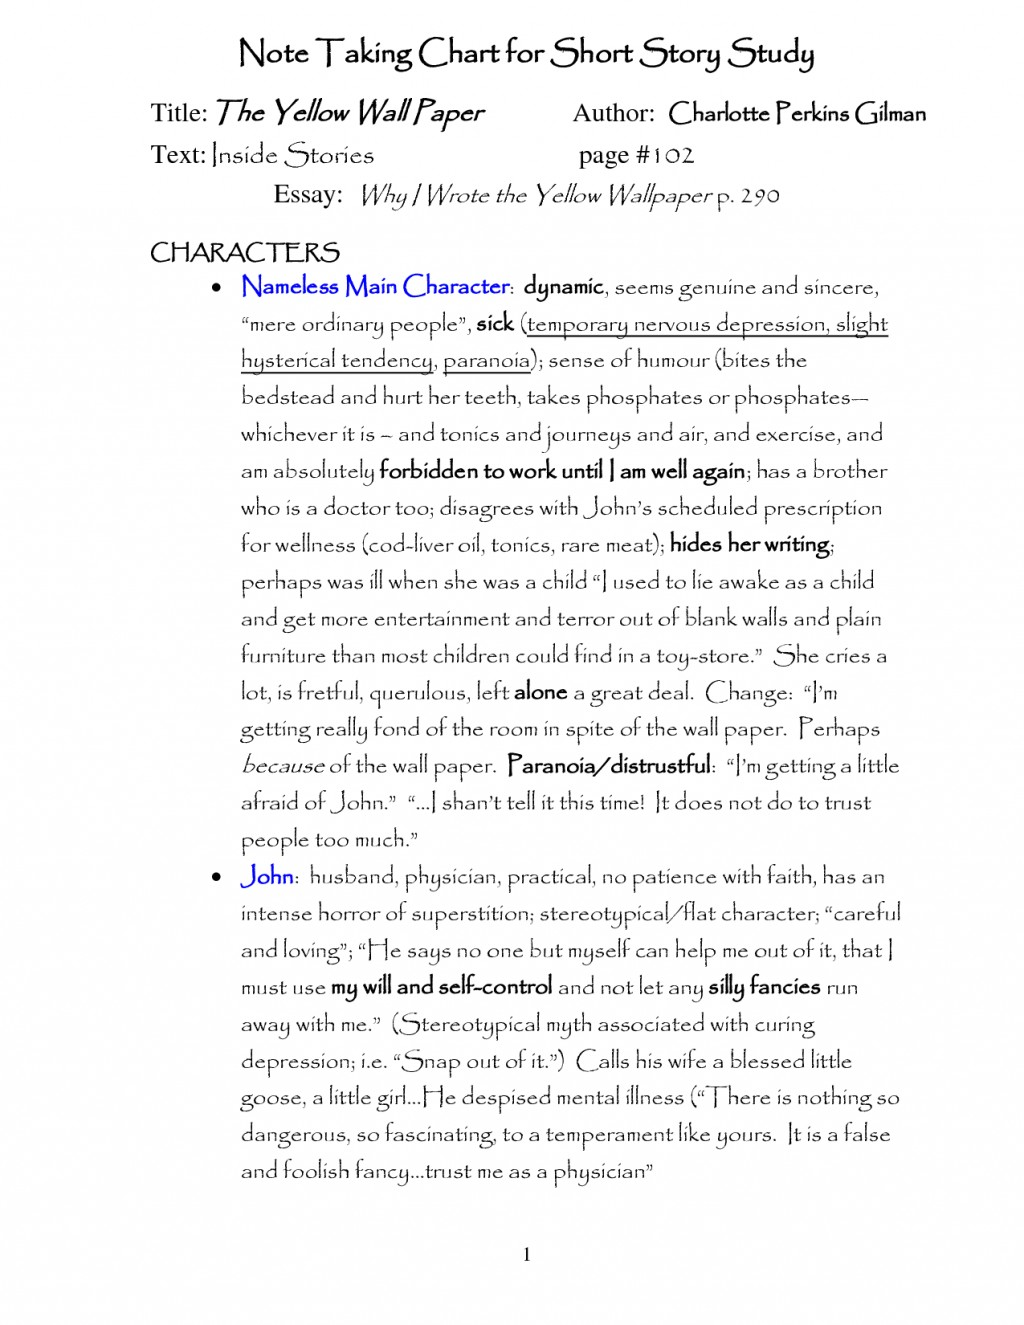 017 Cmydpl Literary Criticism Essay Excellent On The Great Gatsby Ideas Conclusion Sample Large